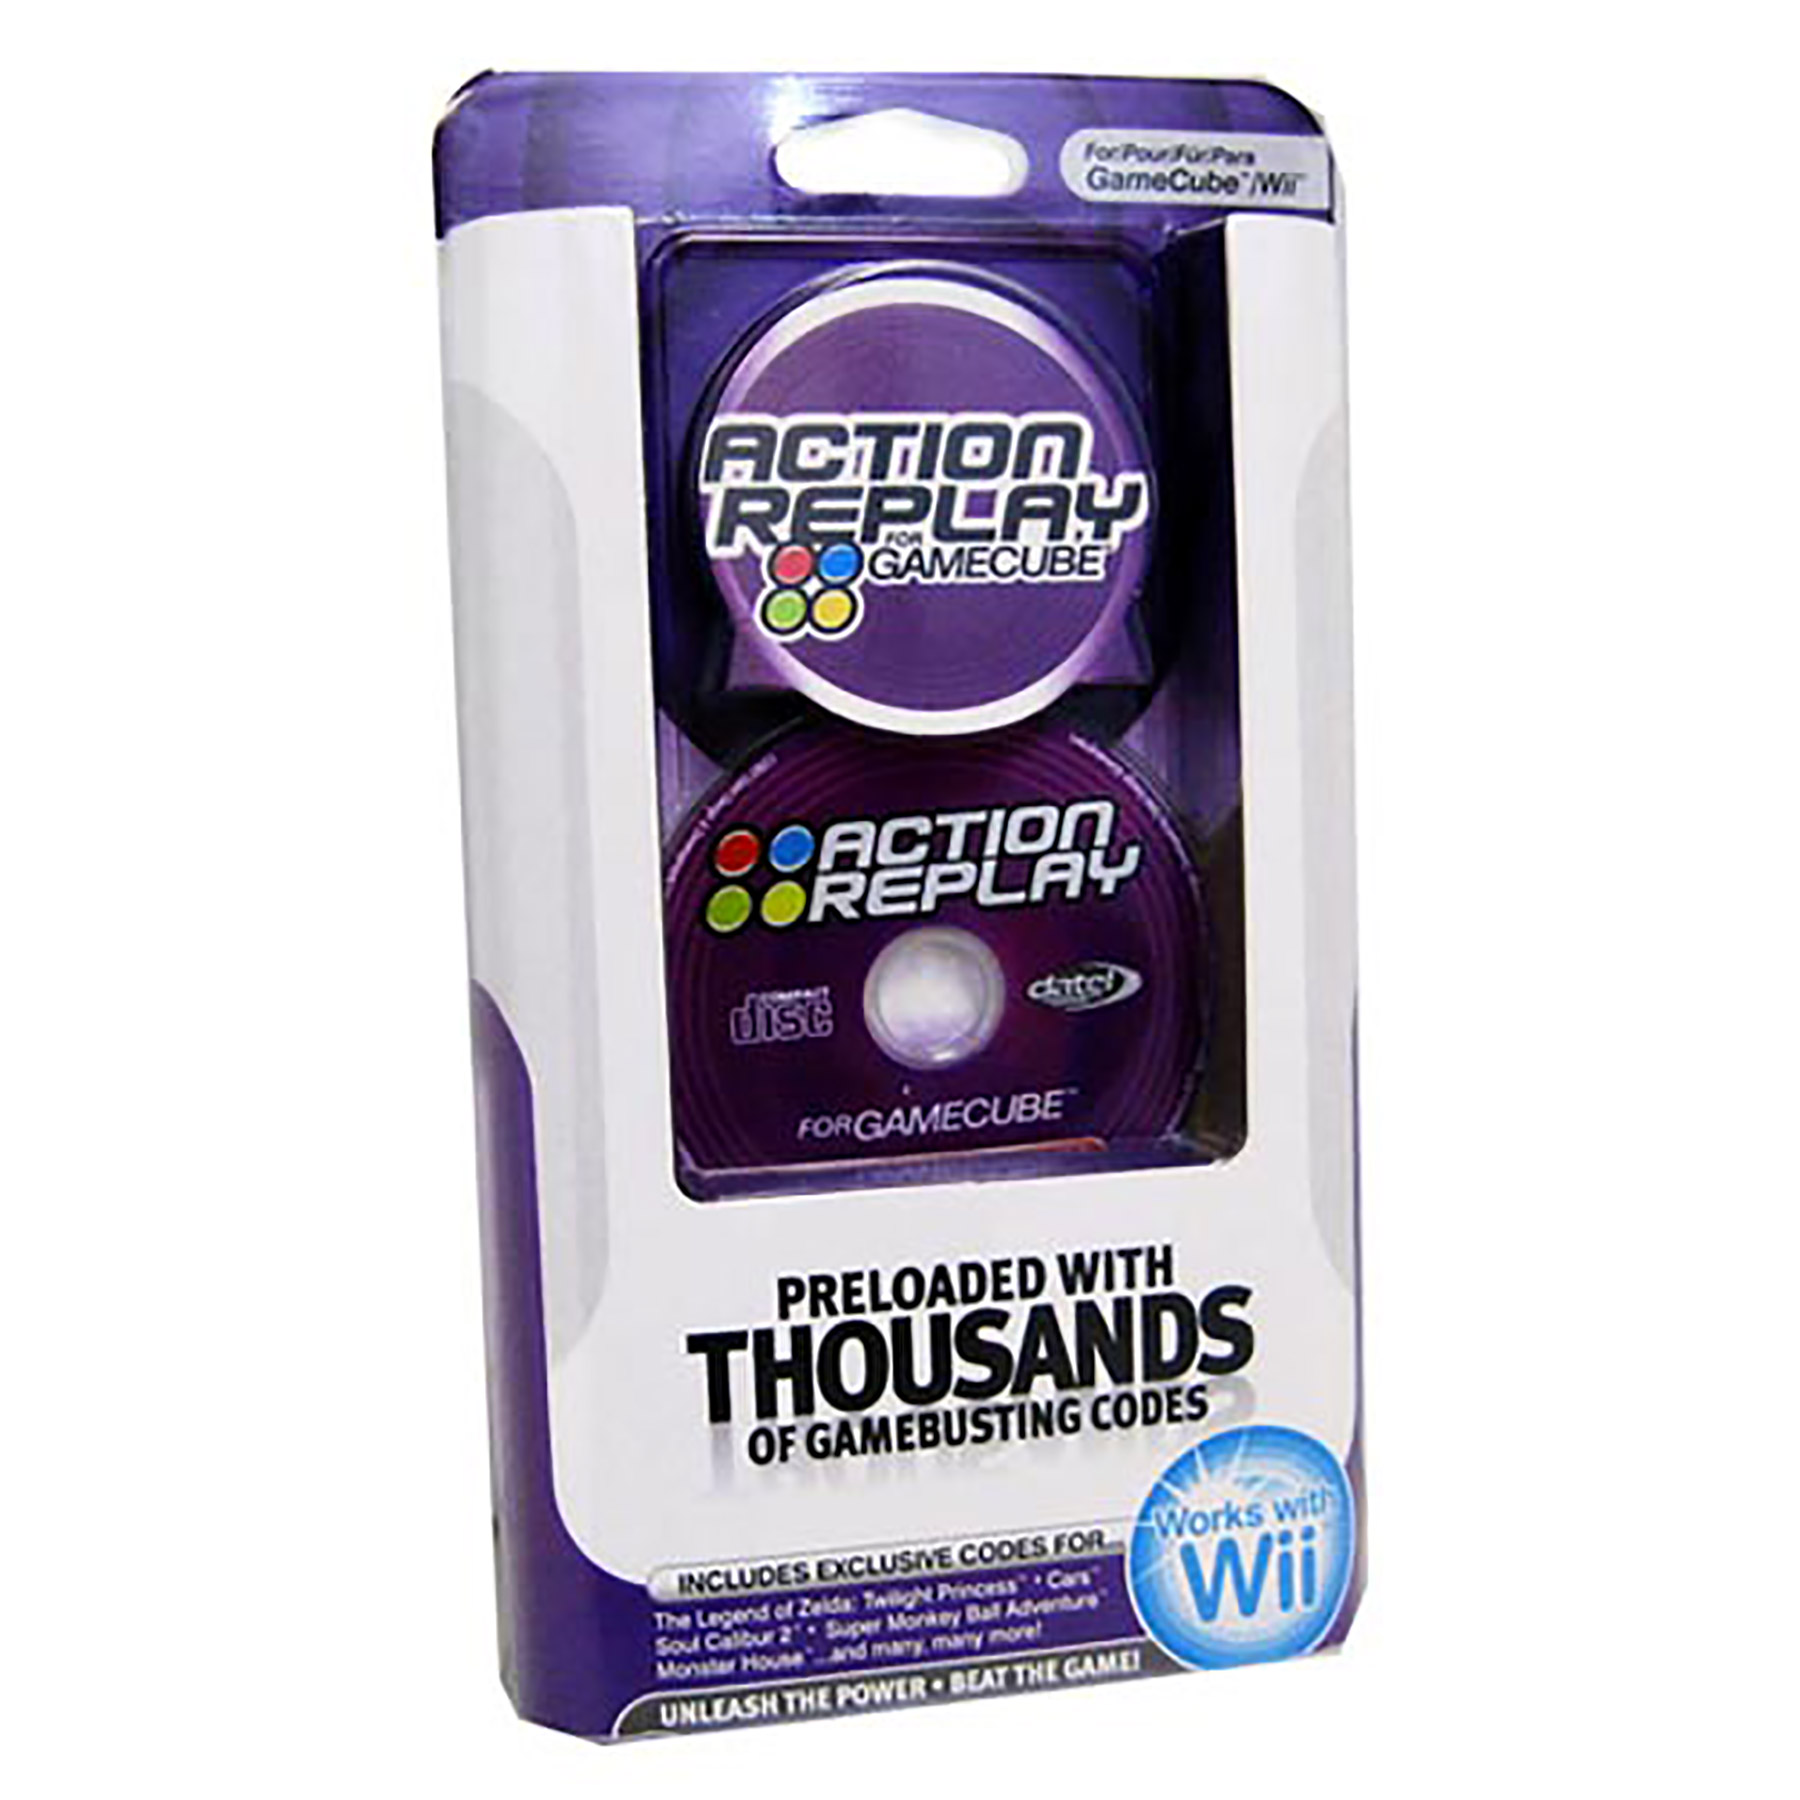 Gamecube Cheat Codes Device Action Replay (Datel)